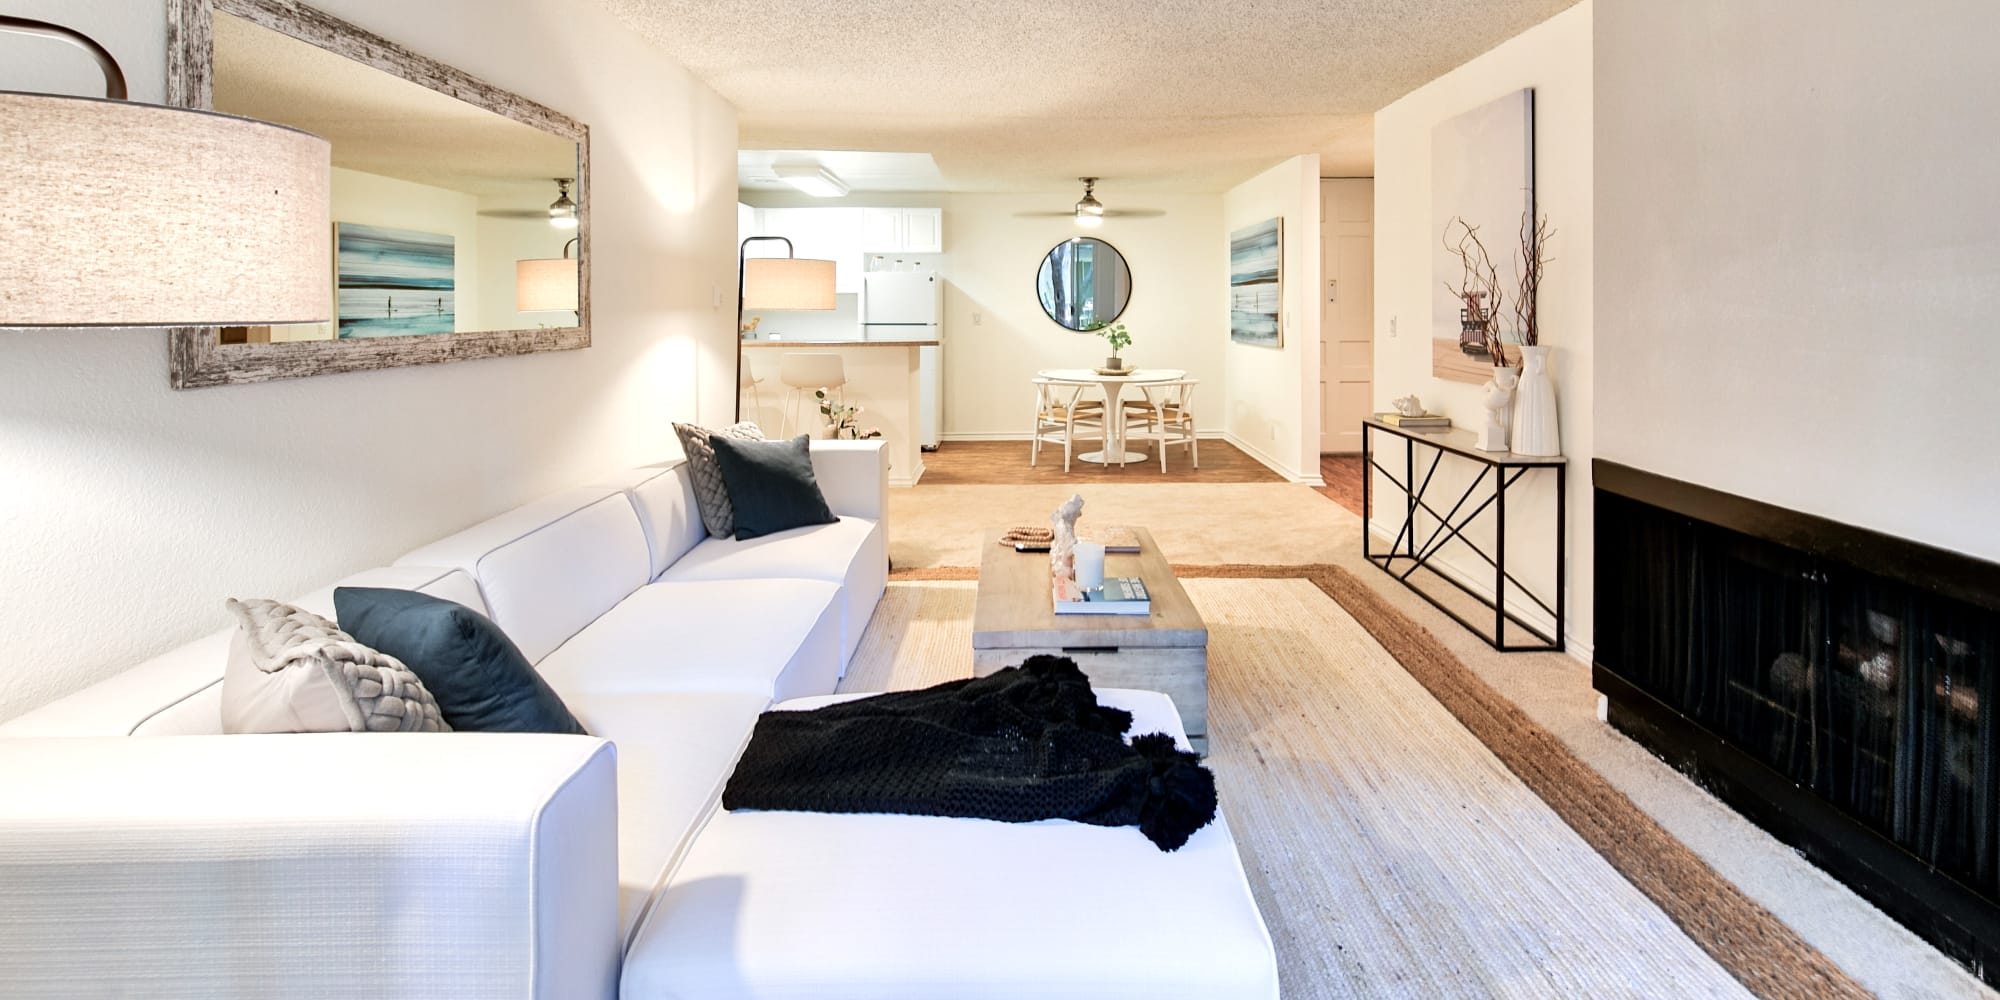 Well-furnished model home's living area at The Meadows in Culver City, California